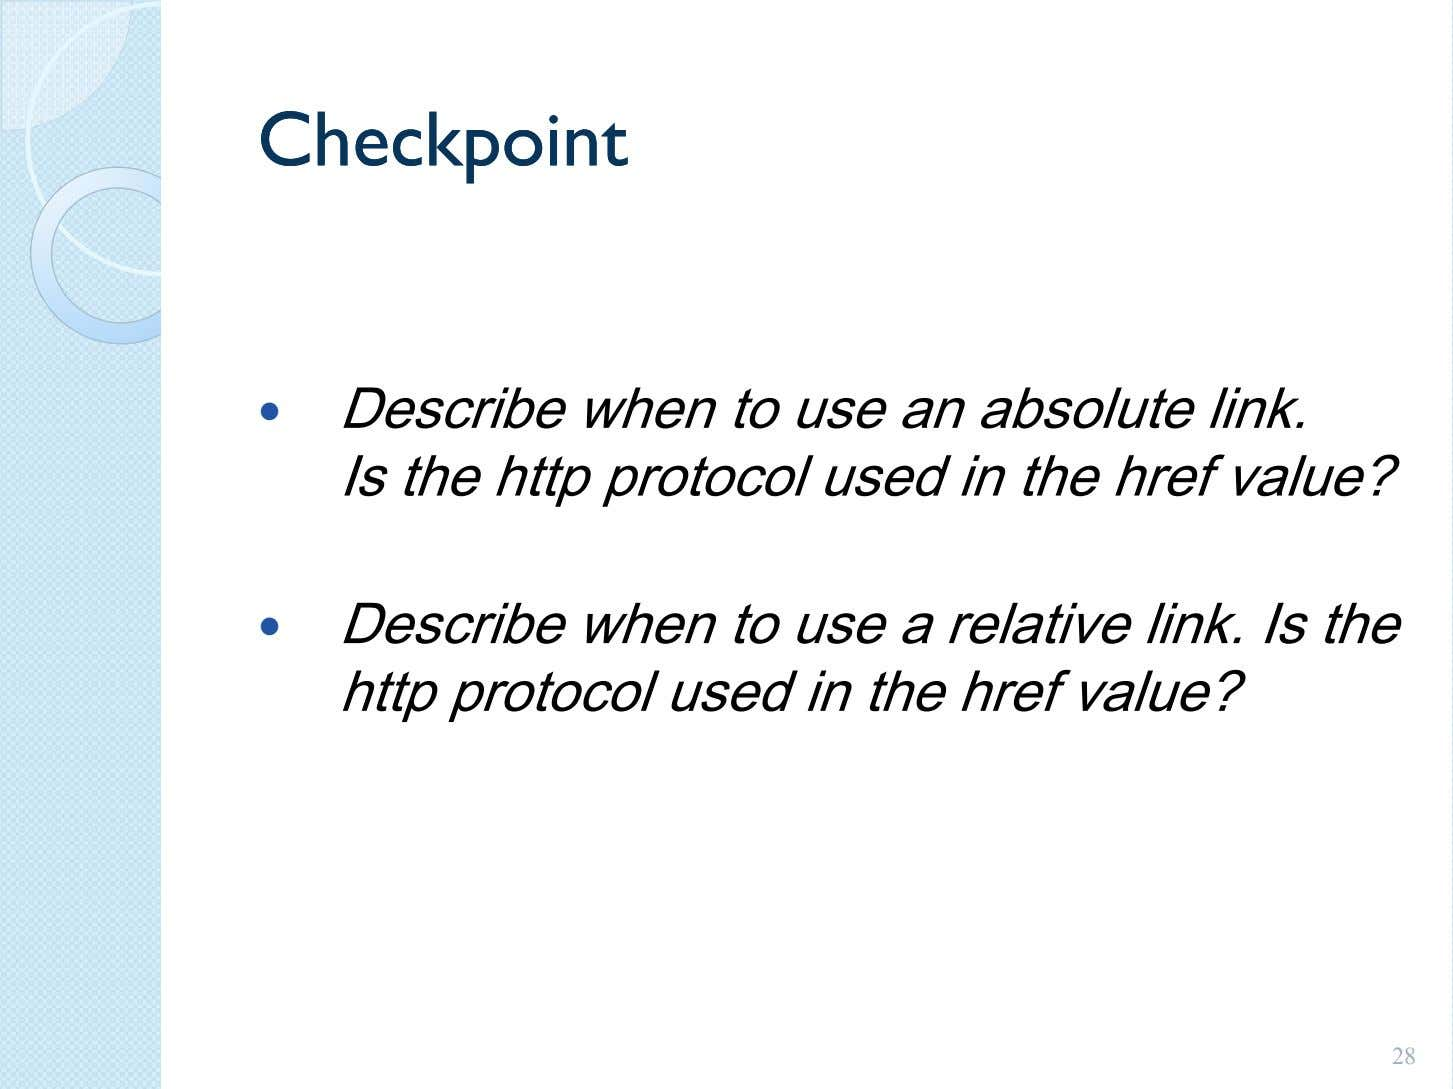 CheckpointCheckpoint Describe when to use an absolute link. Is the http protocol used in the